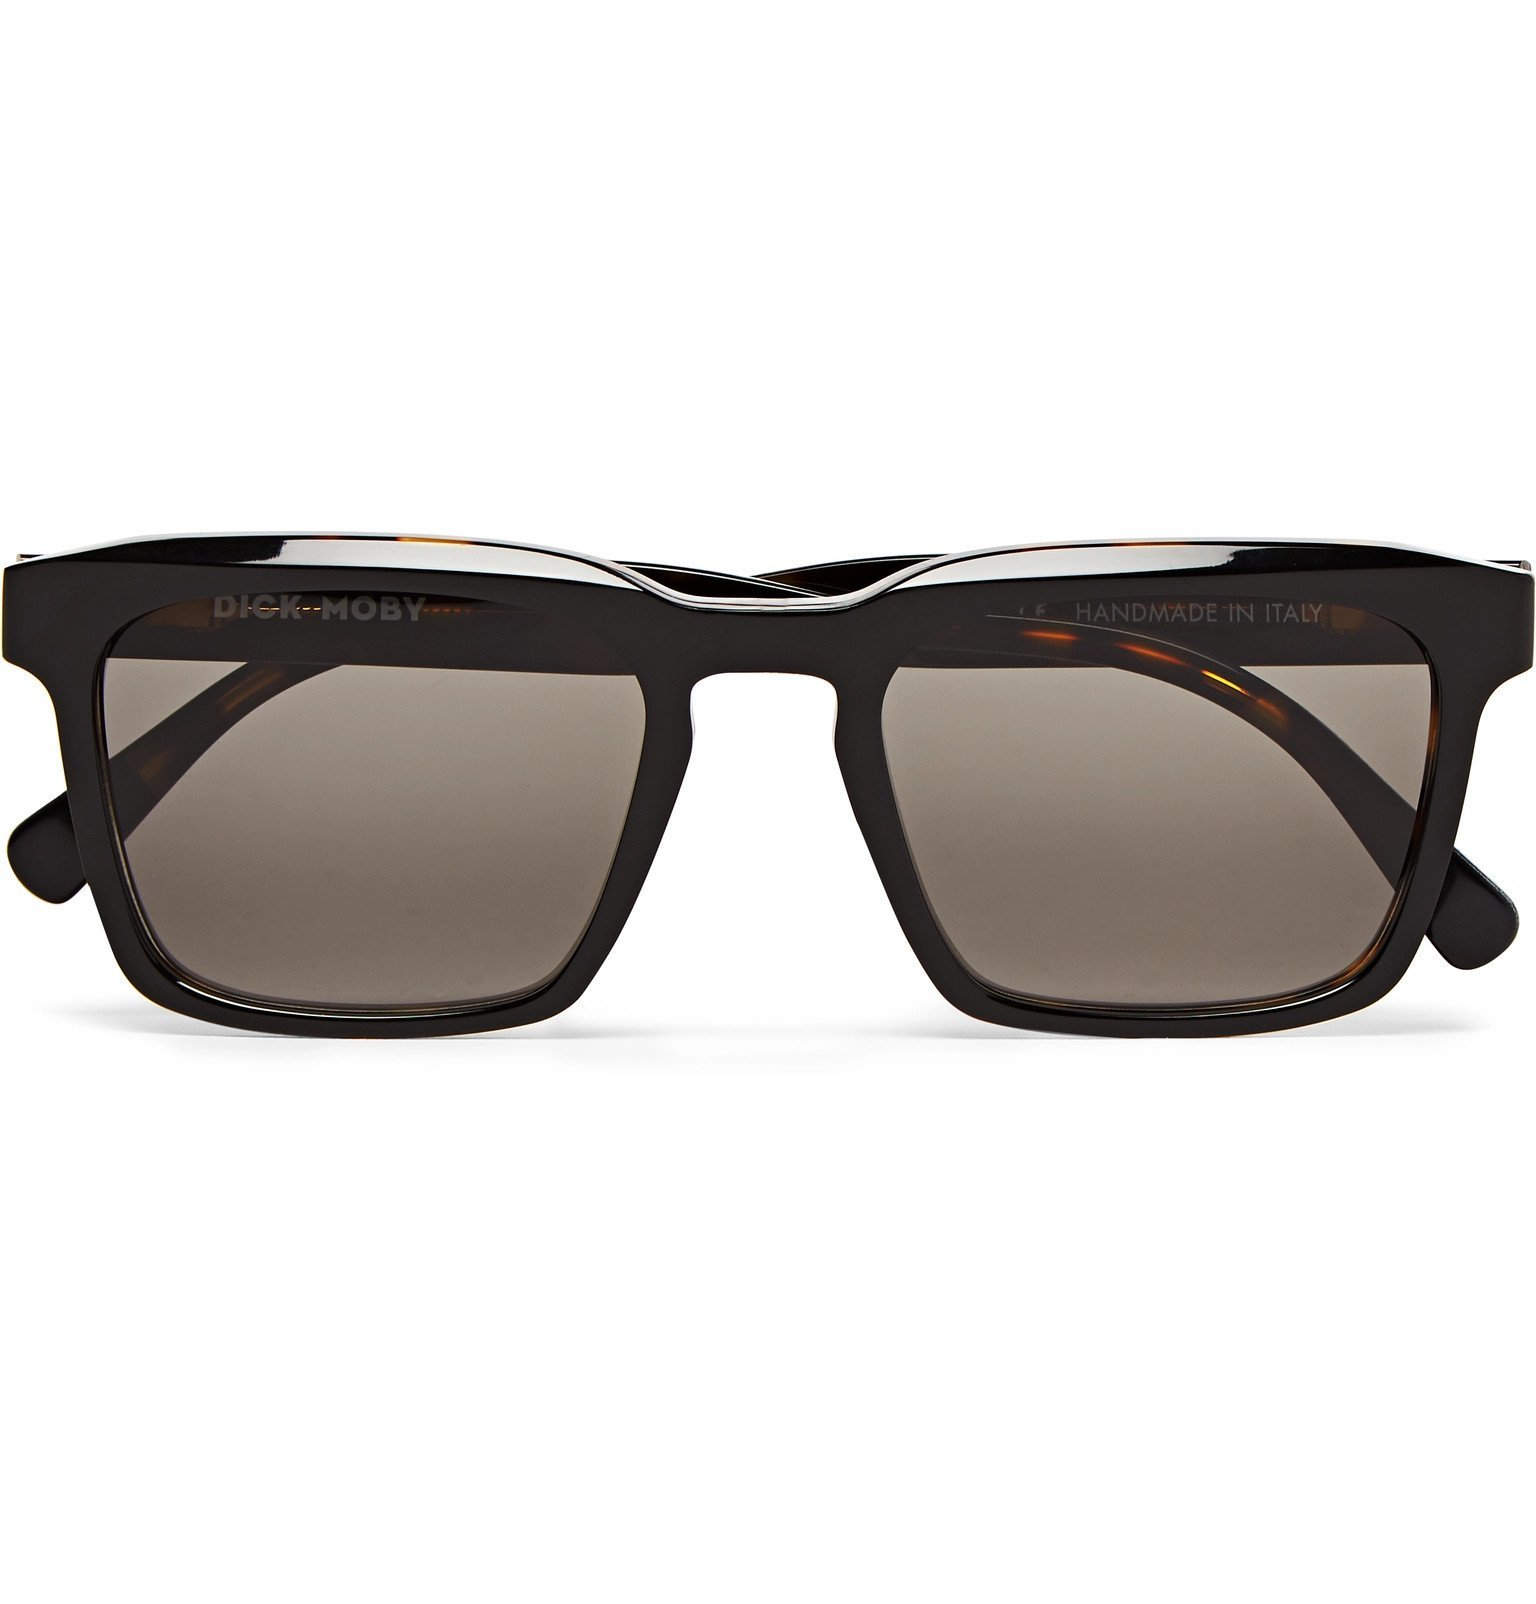 Photo: Dick Moby - Warsaw Square-Frame Tortoiseshell Acetate Sunglasses - Brown